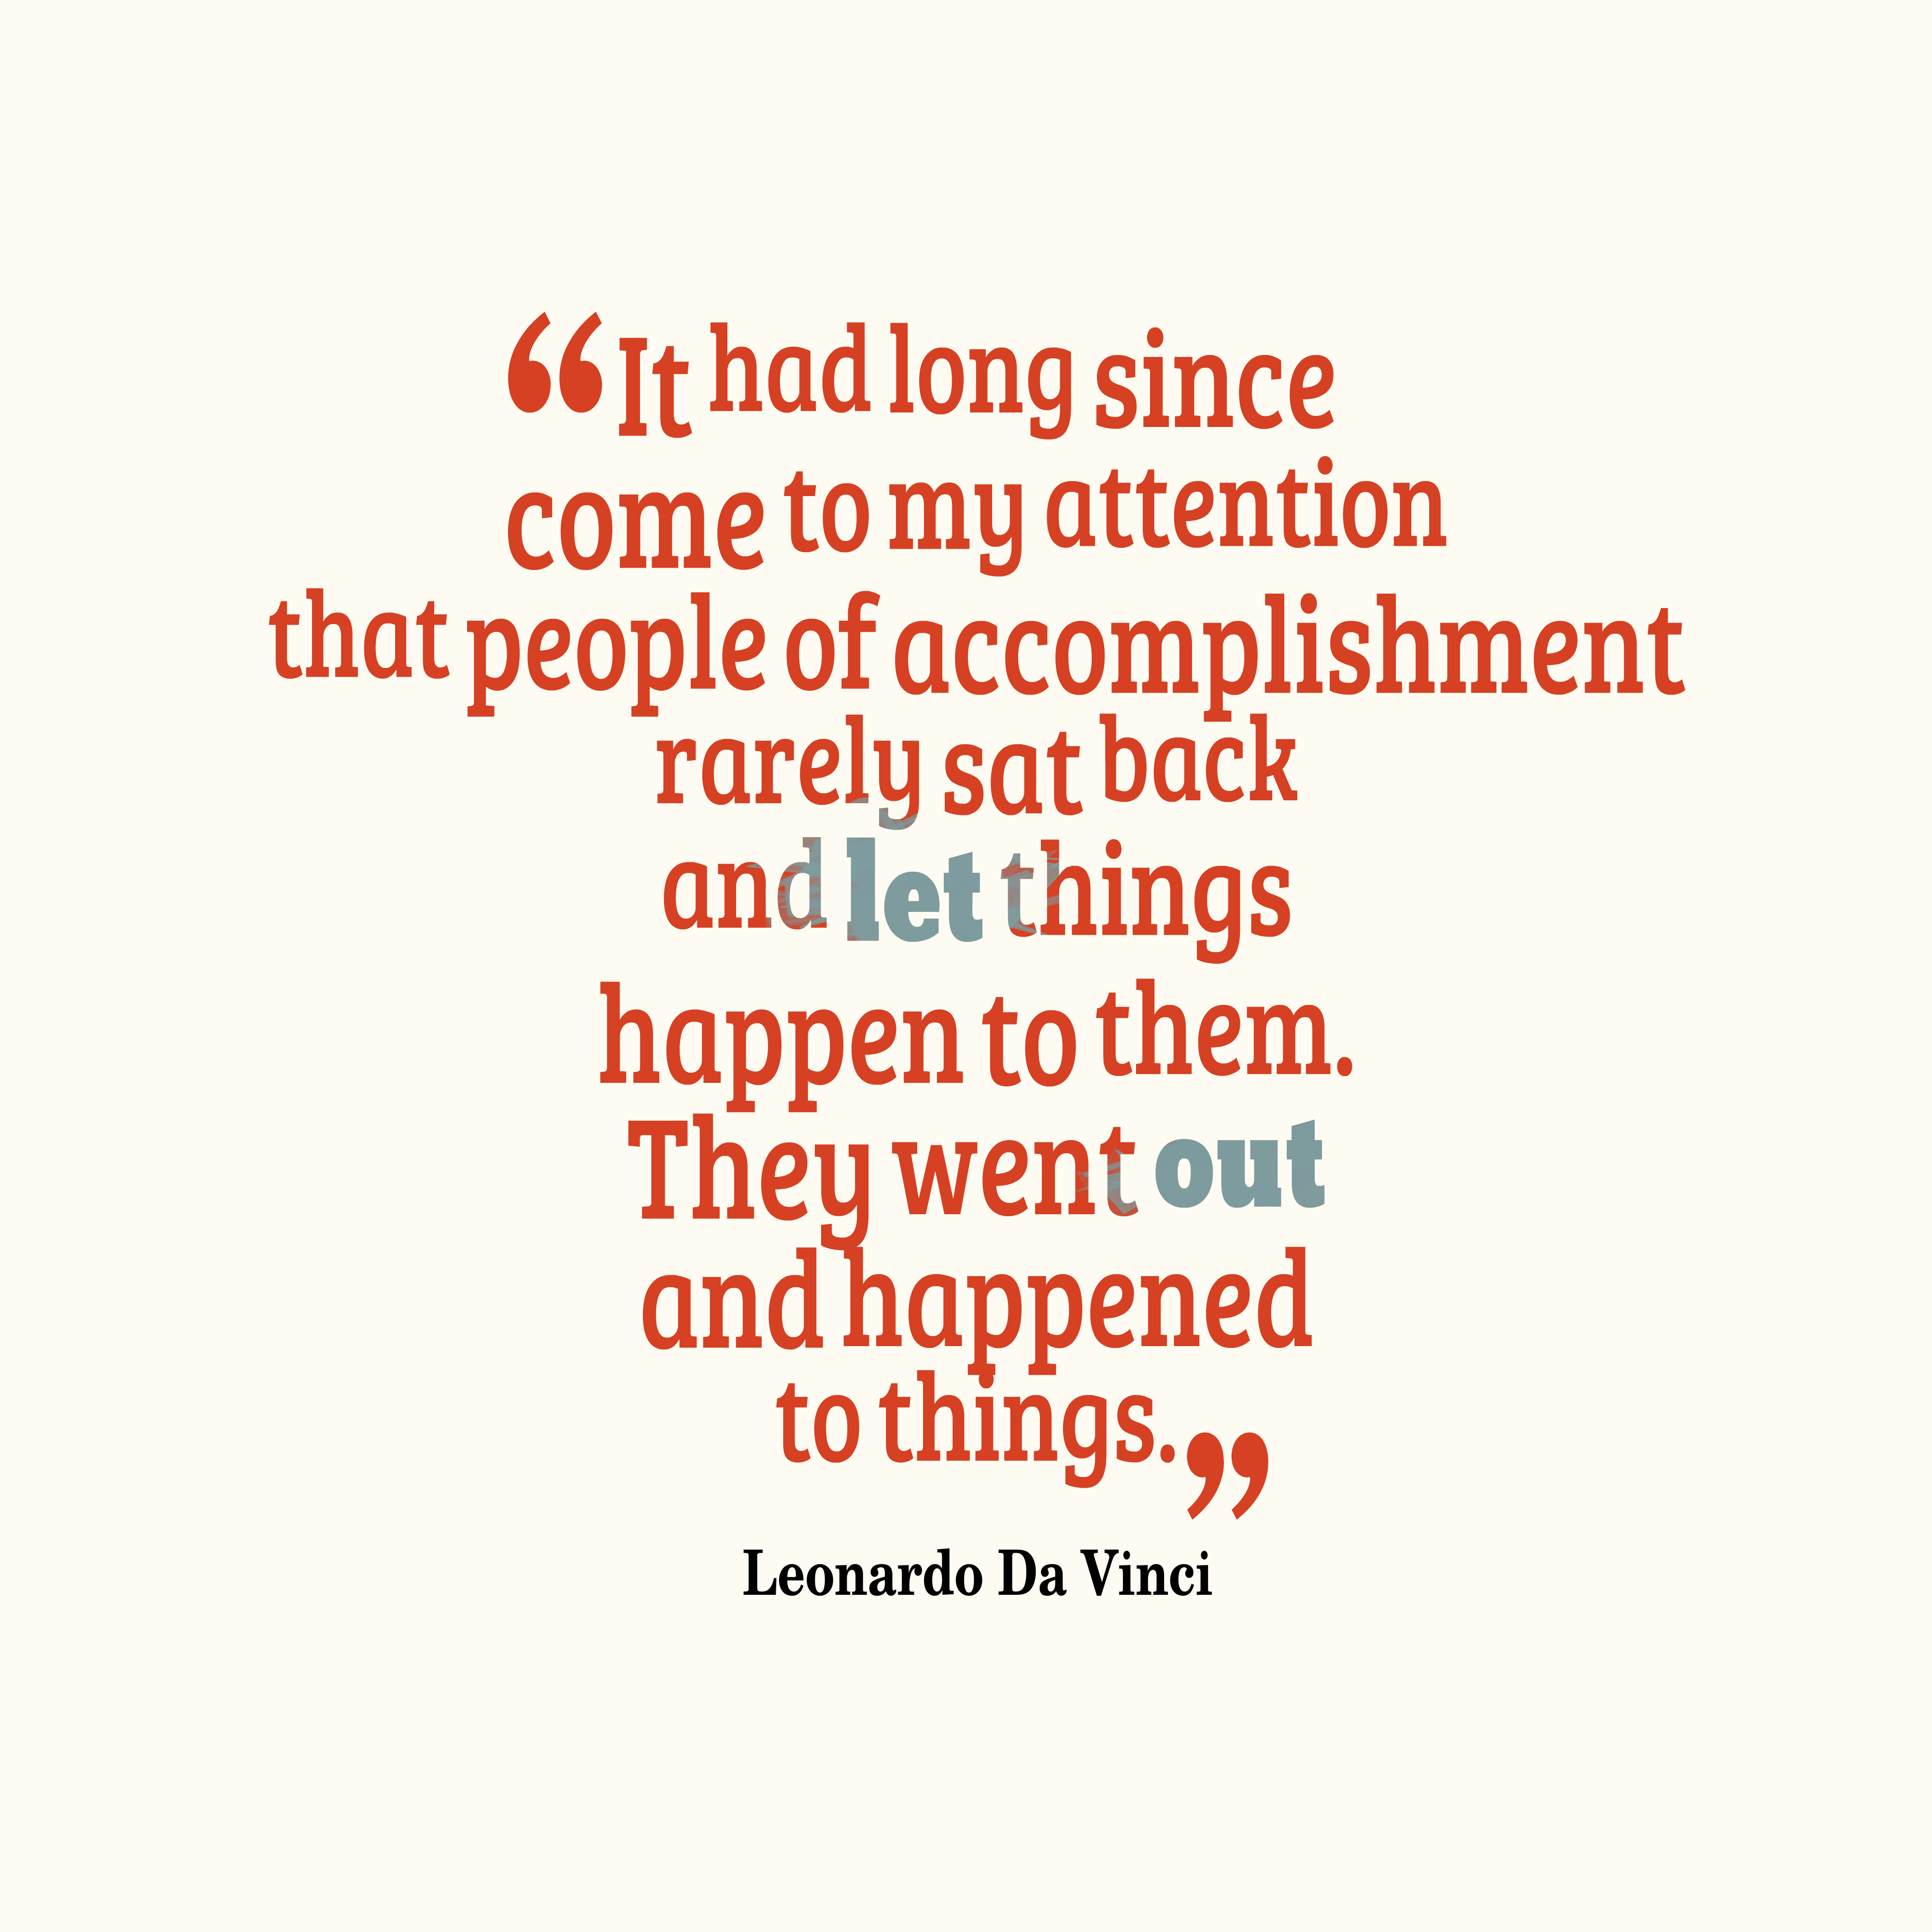 Quotes image of It had long since come to my attention that people of accomplishment rarely sat back and let things happen to them. They went out and happened to things.